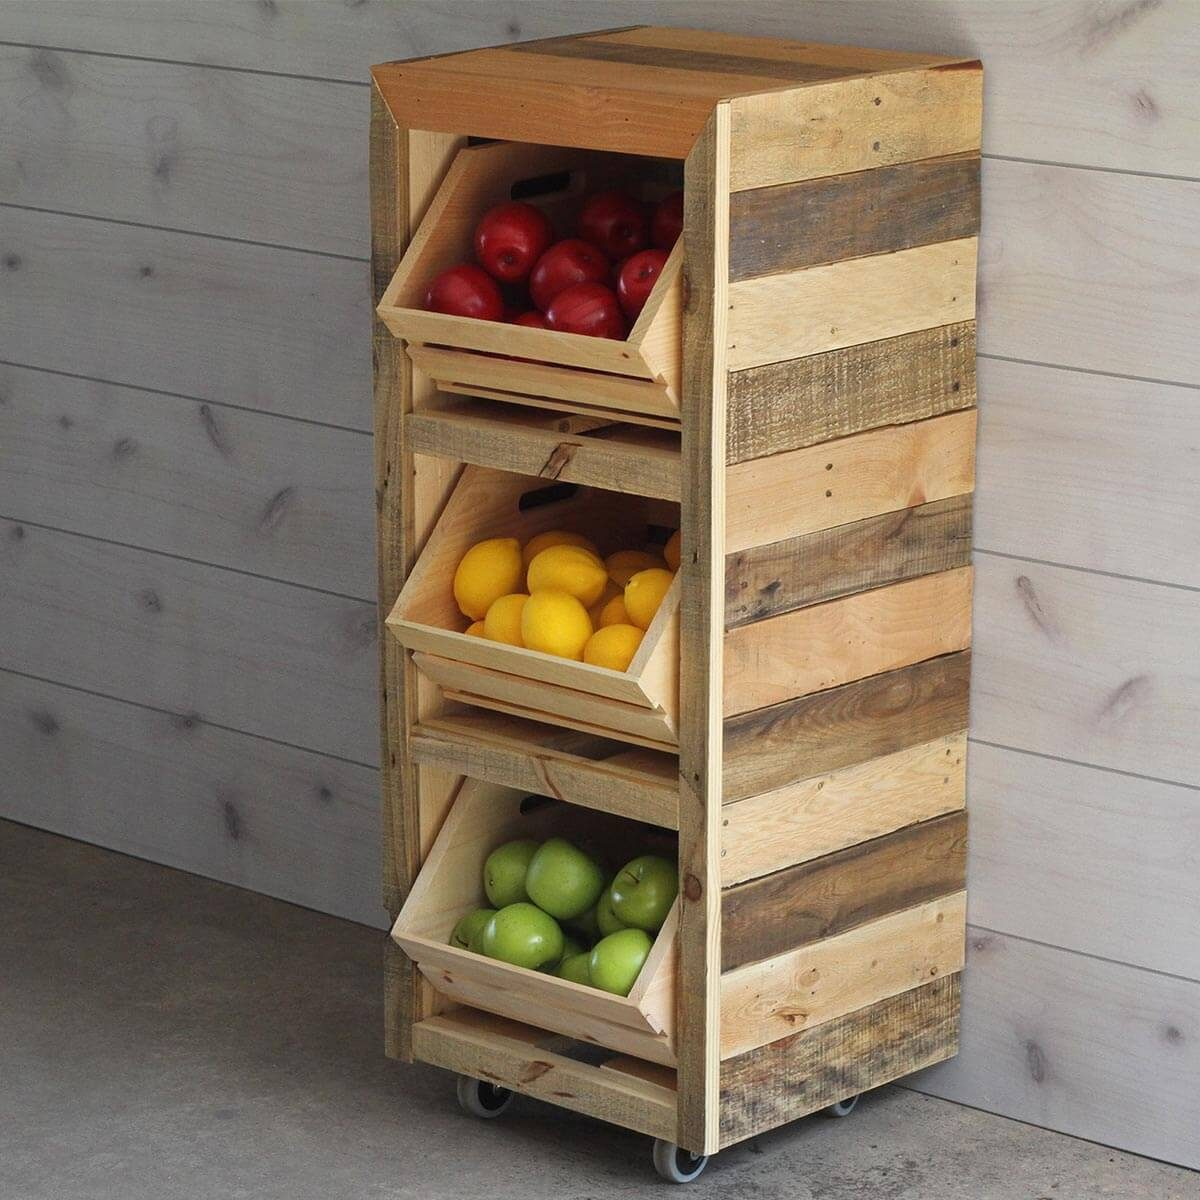 This Simple Project Will Keep Your Fruits And Veggies Corralled Yet Still  Easily Accessible.